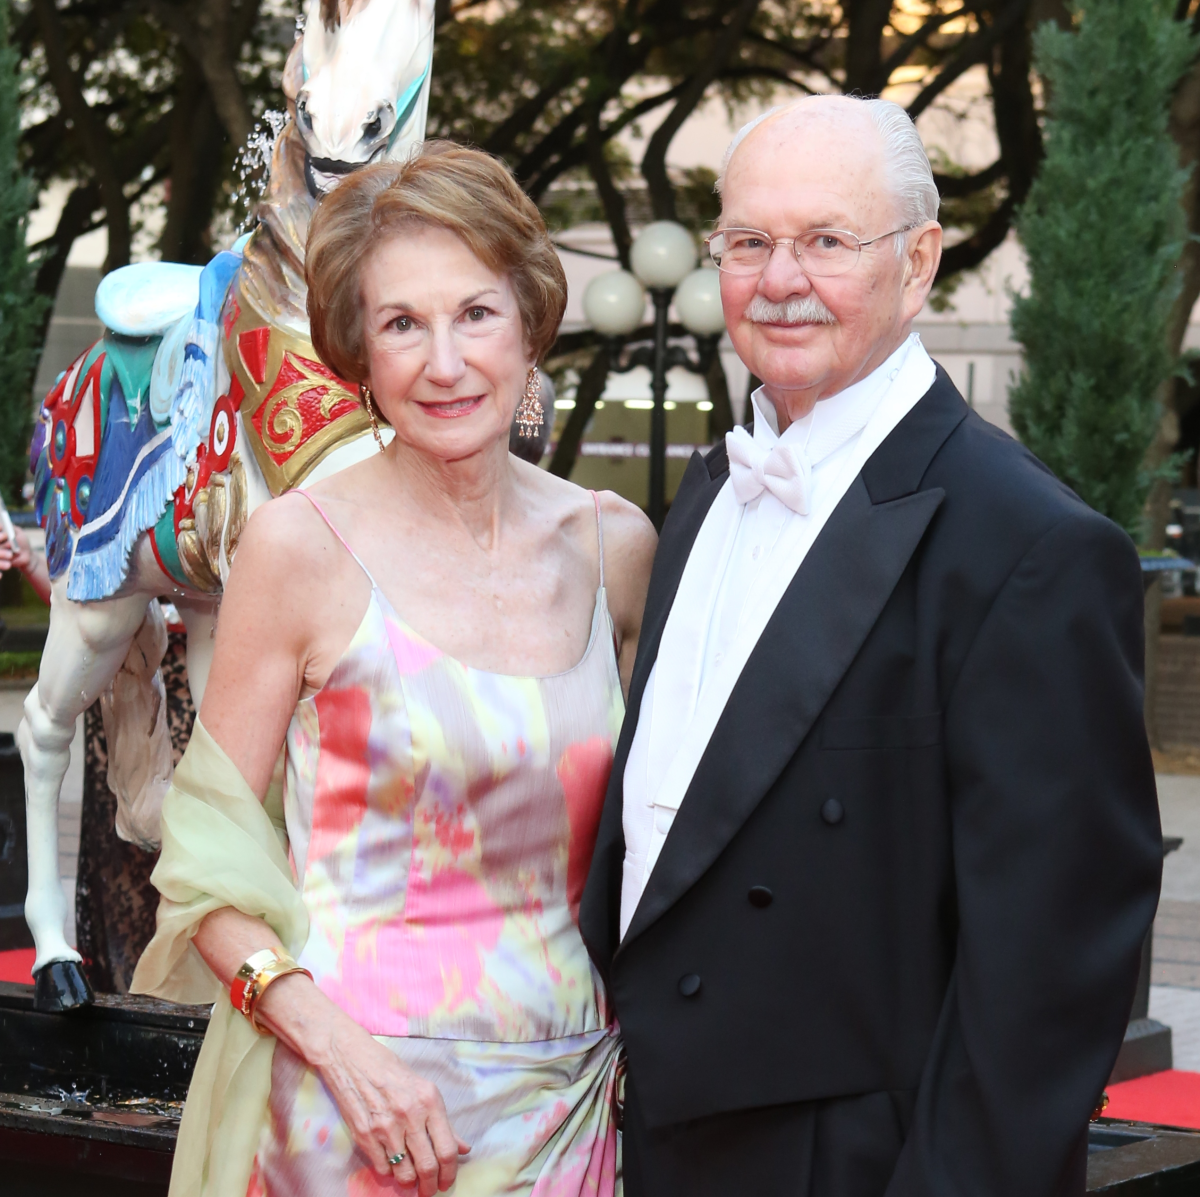 Houston Grand Opera Ball, 4/16 Laura McWilliams, Brad McWililams